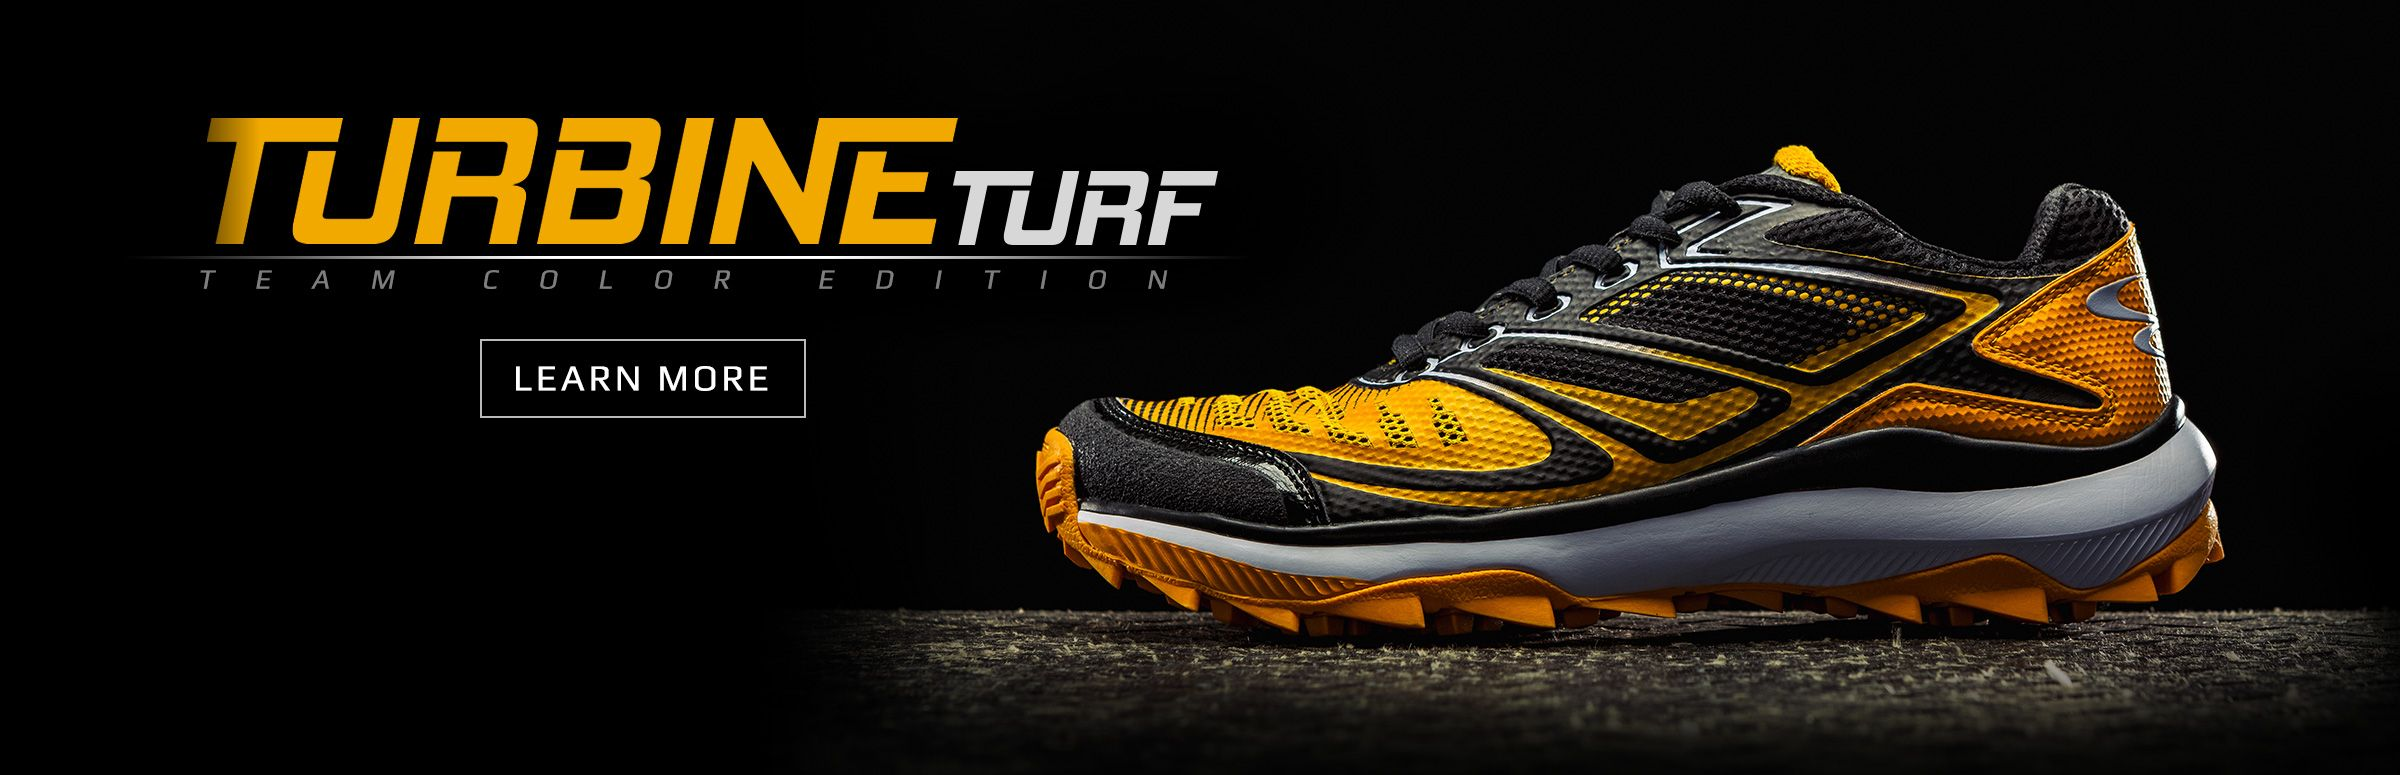 Team Colors Edition Turbine Turfs